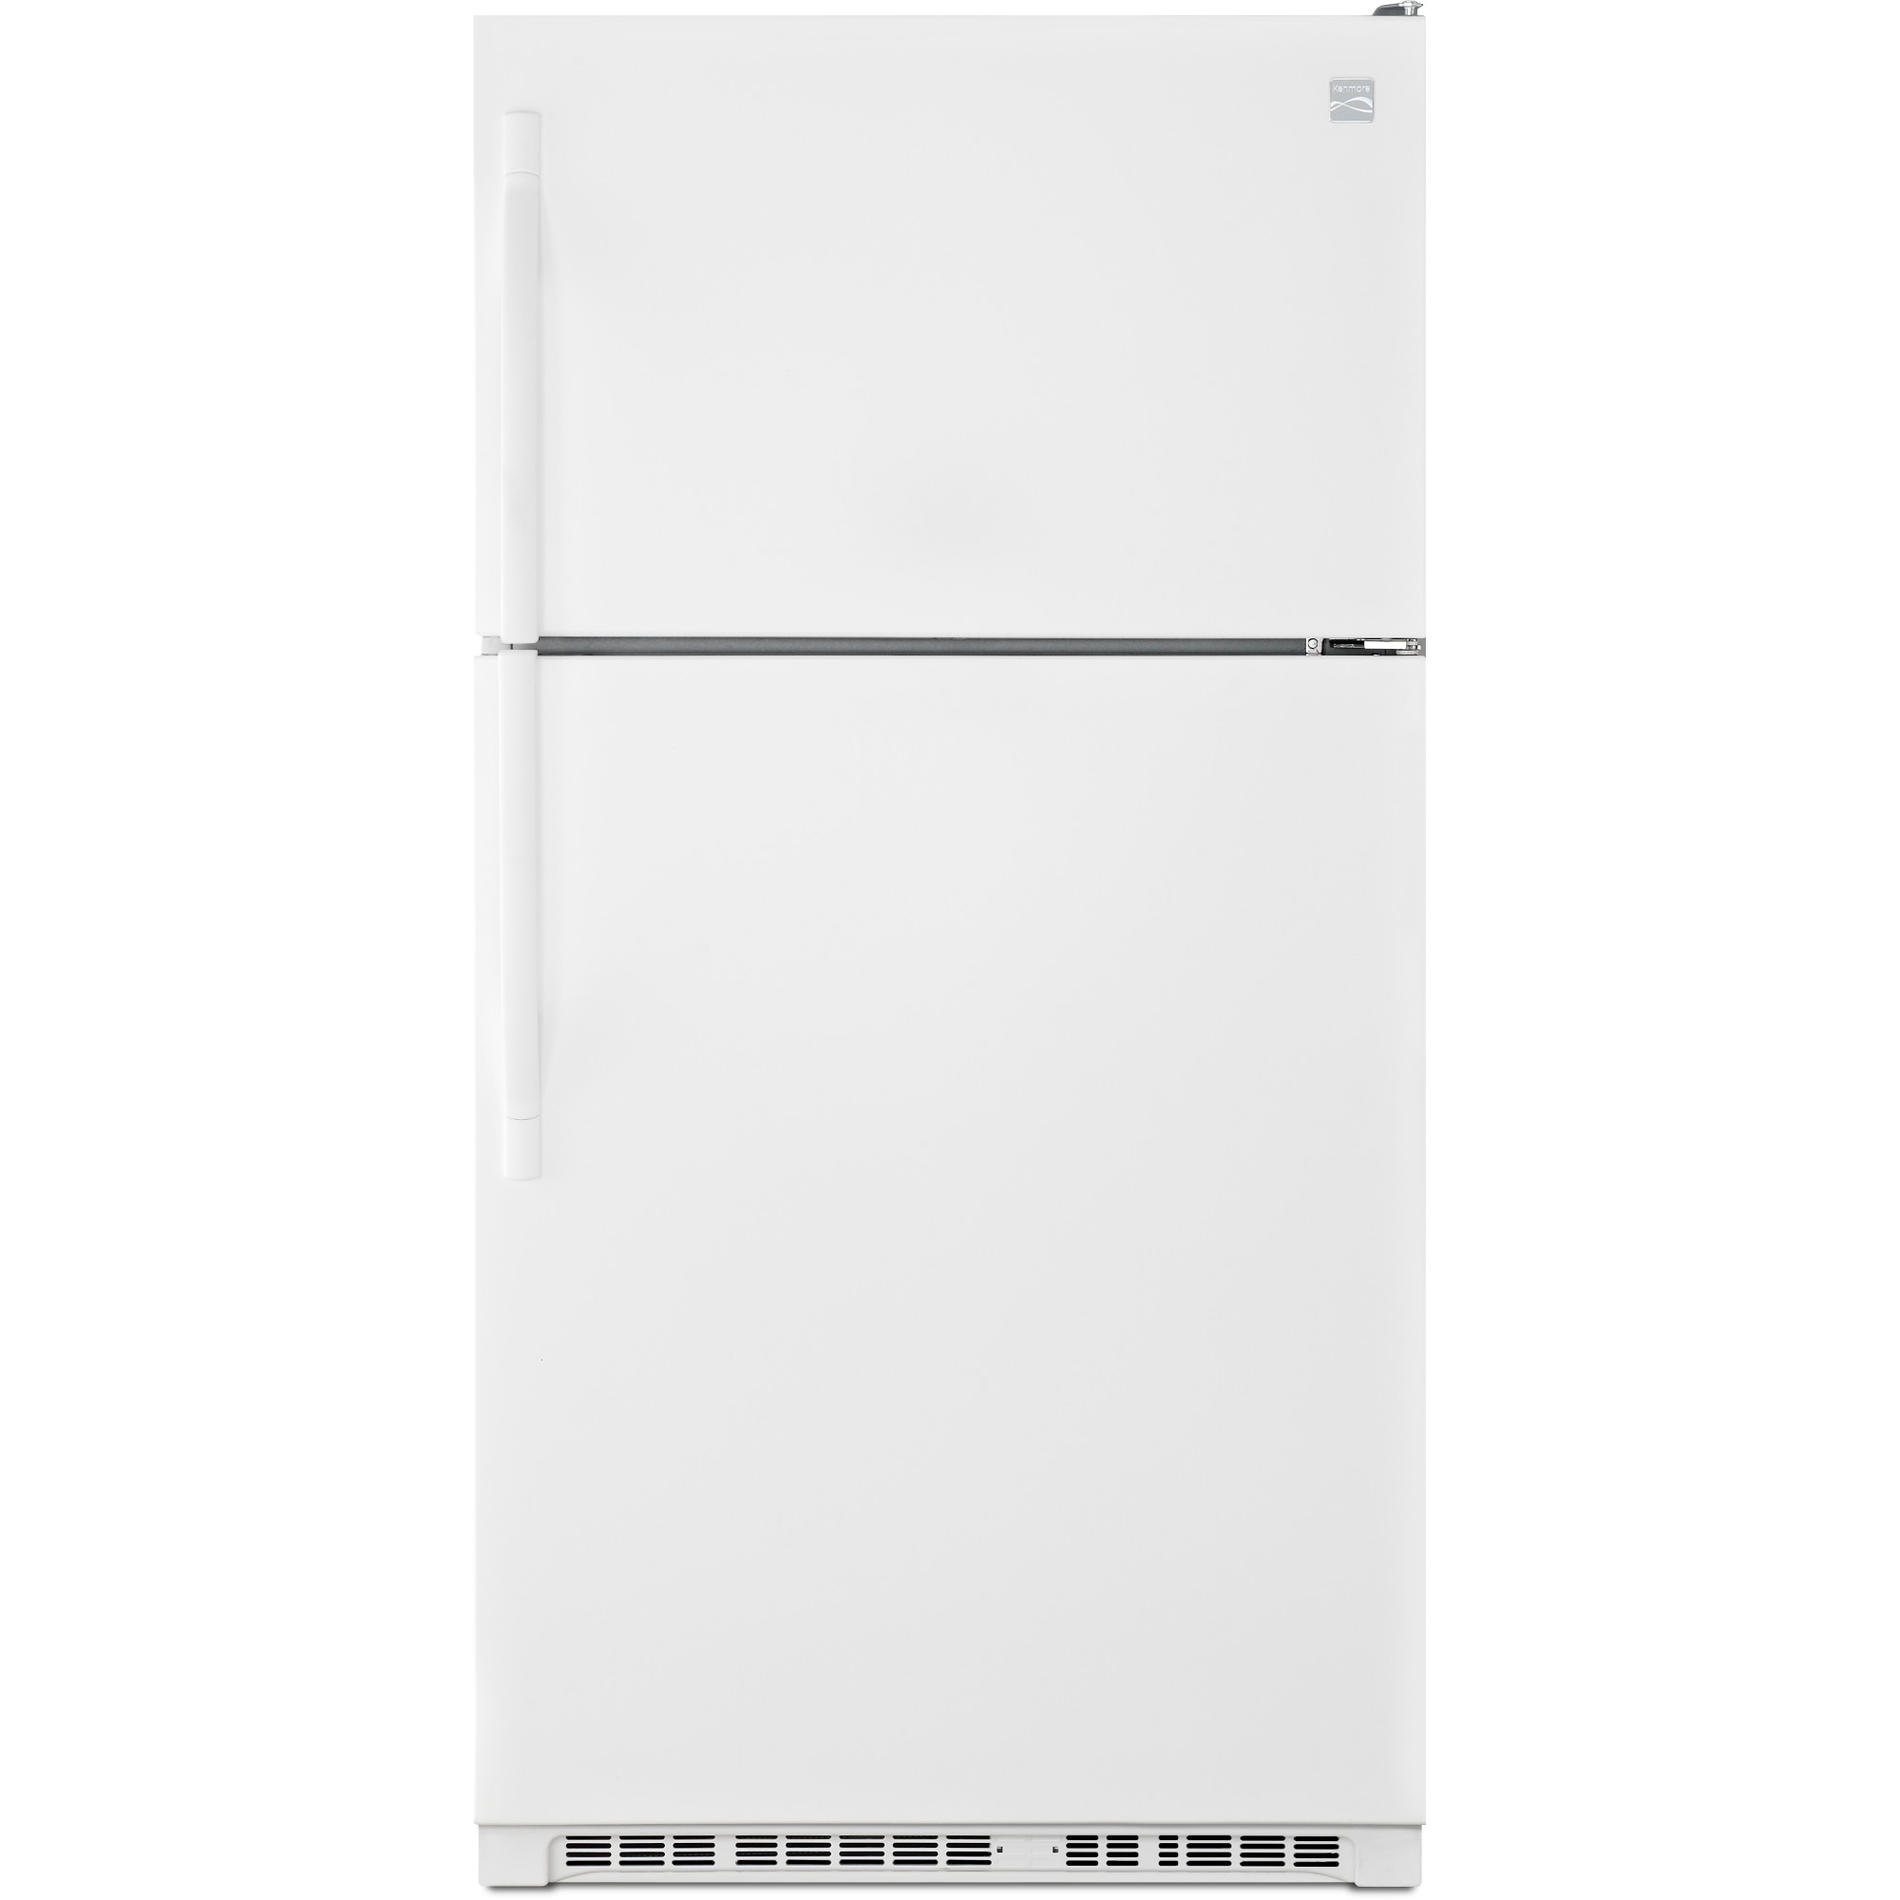 Kenmore 60212 20.5 cu. ft. Top Freezer Refrigerator - White